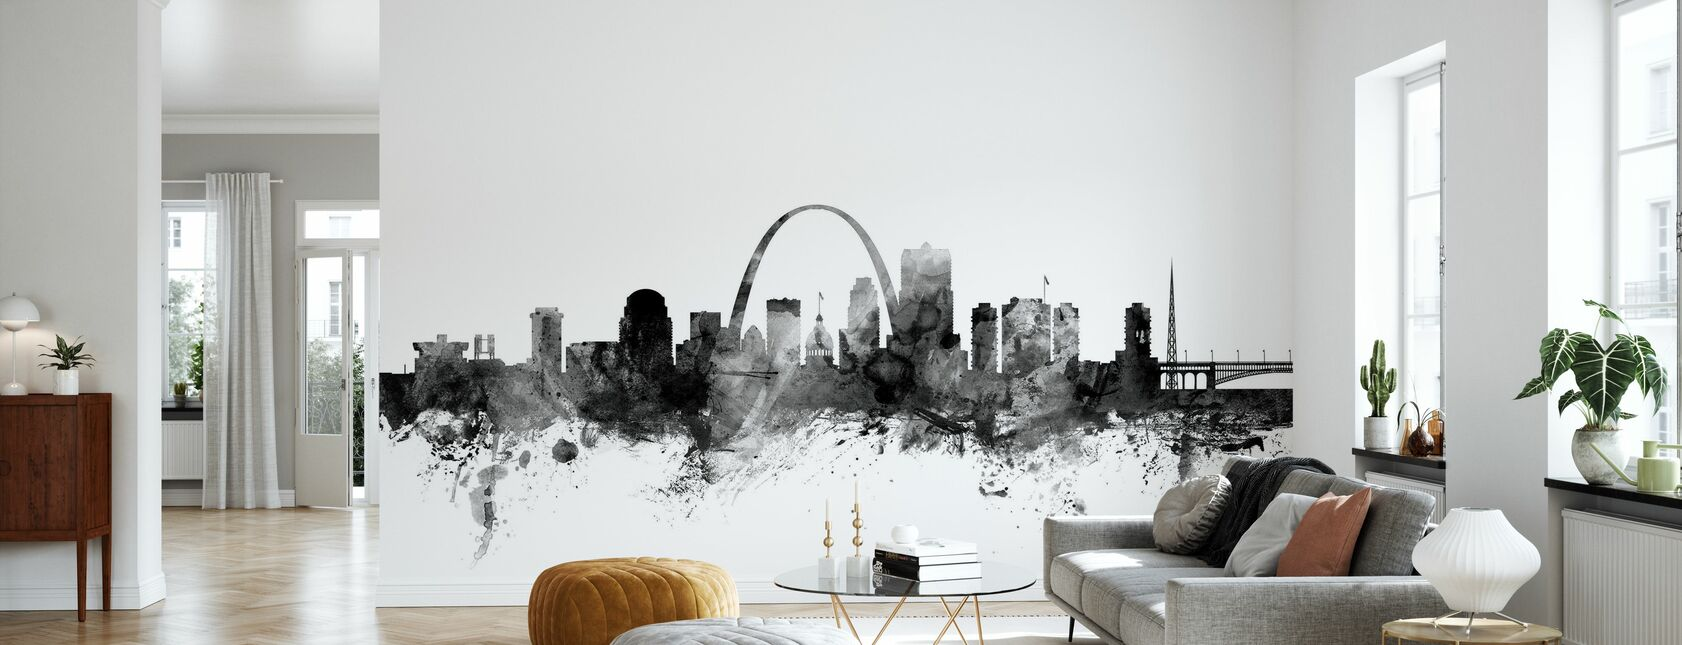 St Louis Missouri Skyline Black - Wallpaper - Living Room